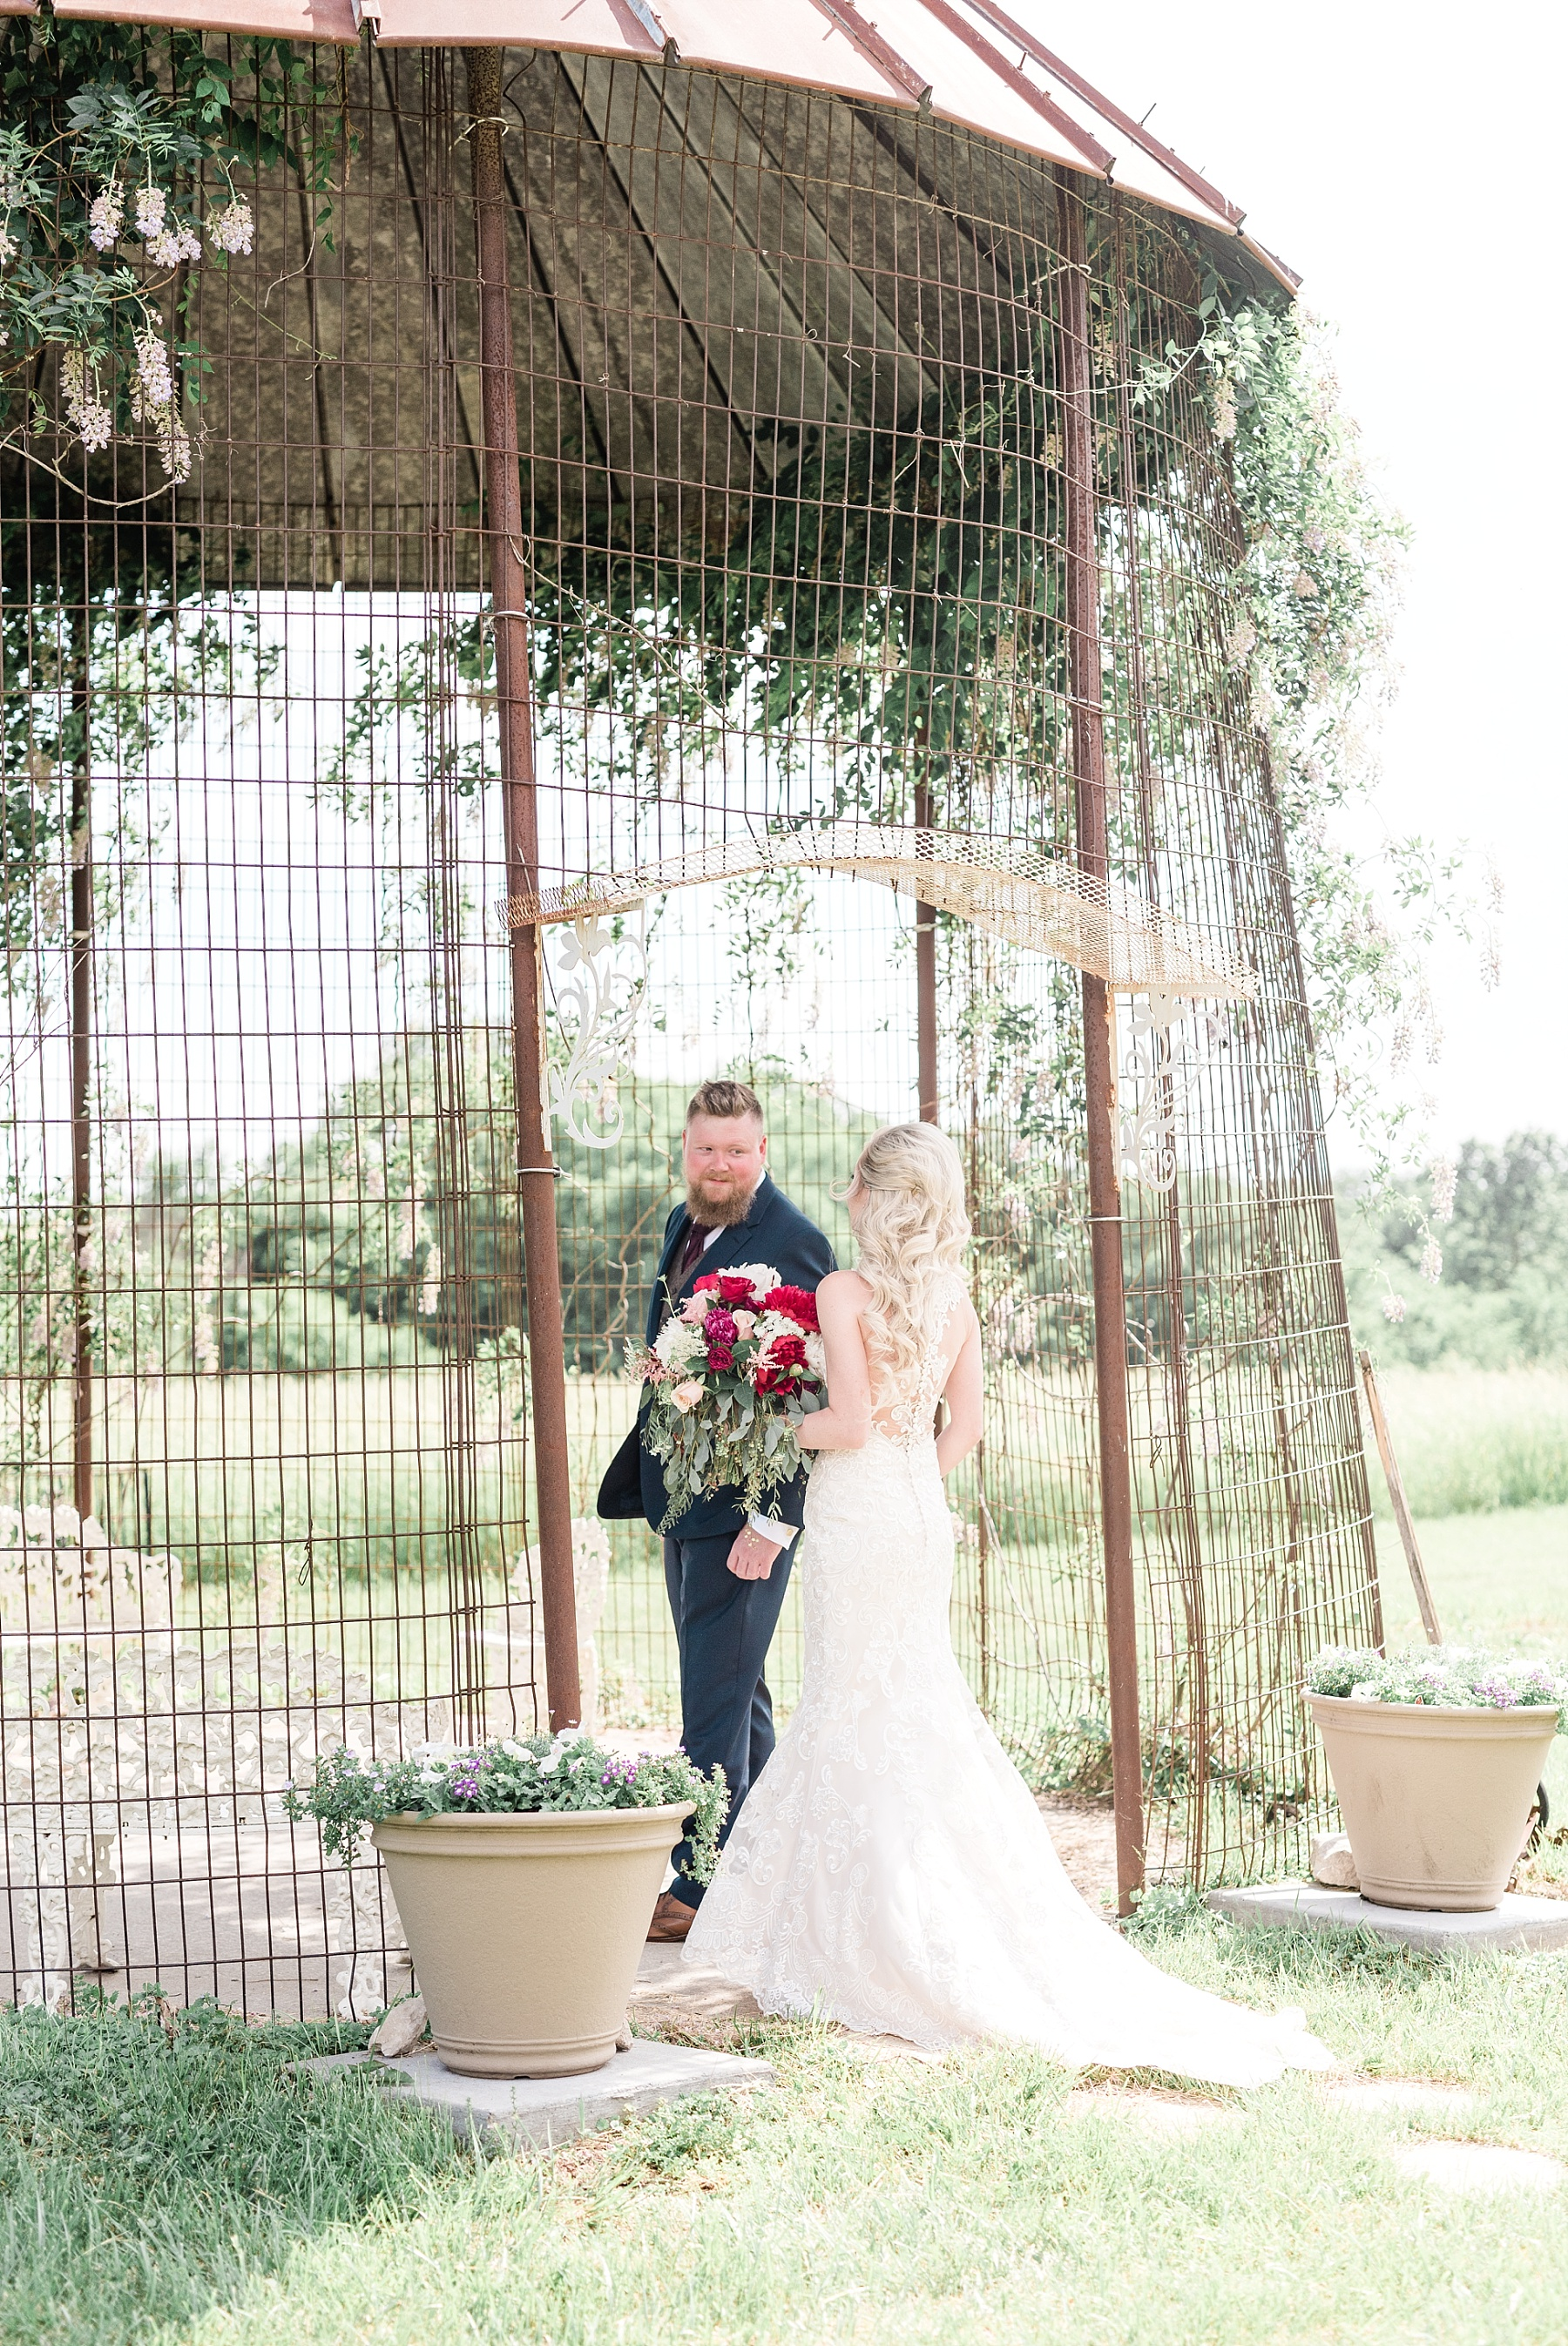 Light and Airy Spring Shabby Chic Wedding at Bessie's Barn Iowa by Kelsi Kliethermes Photography_0013.jpg